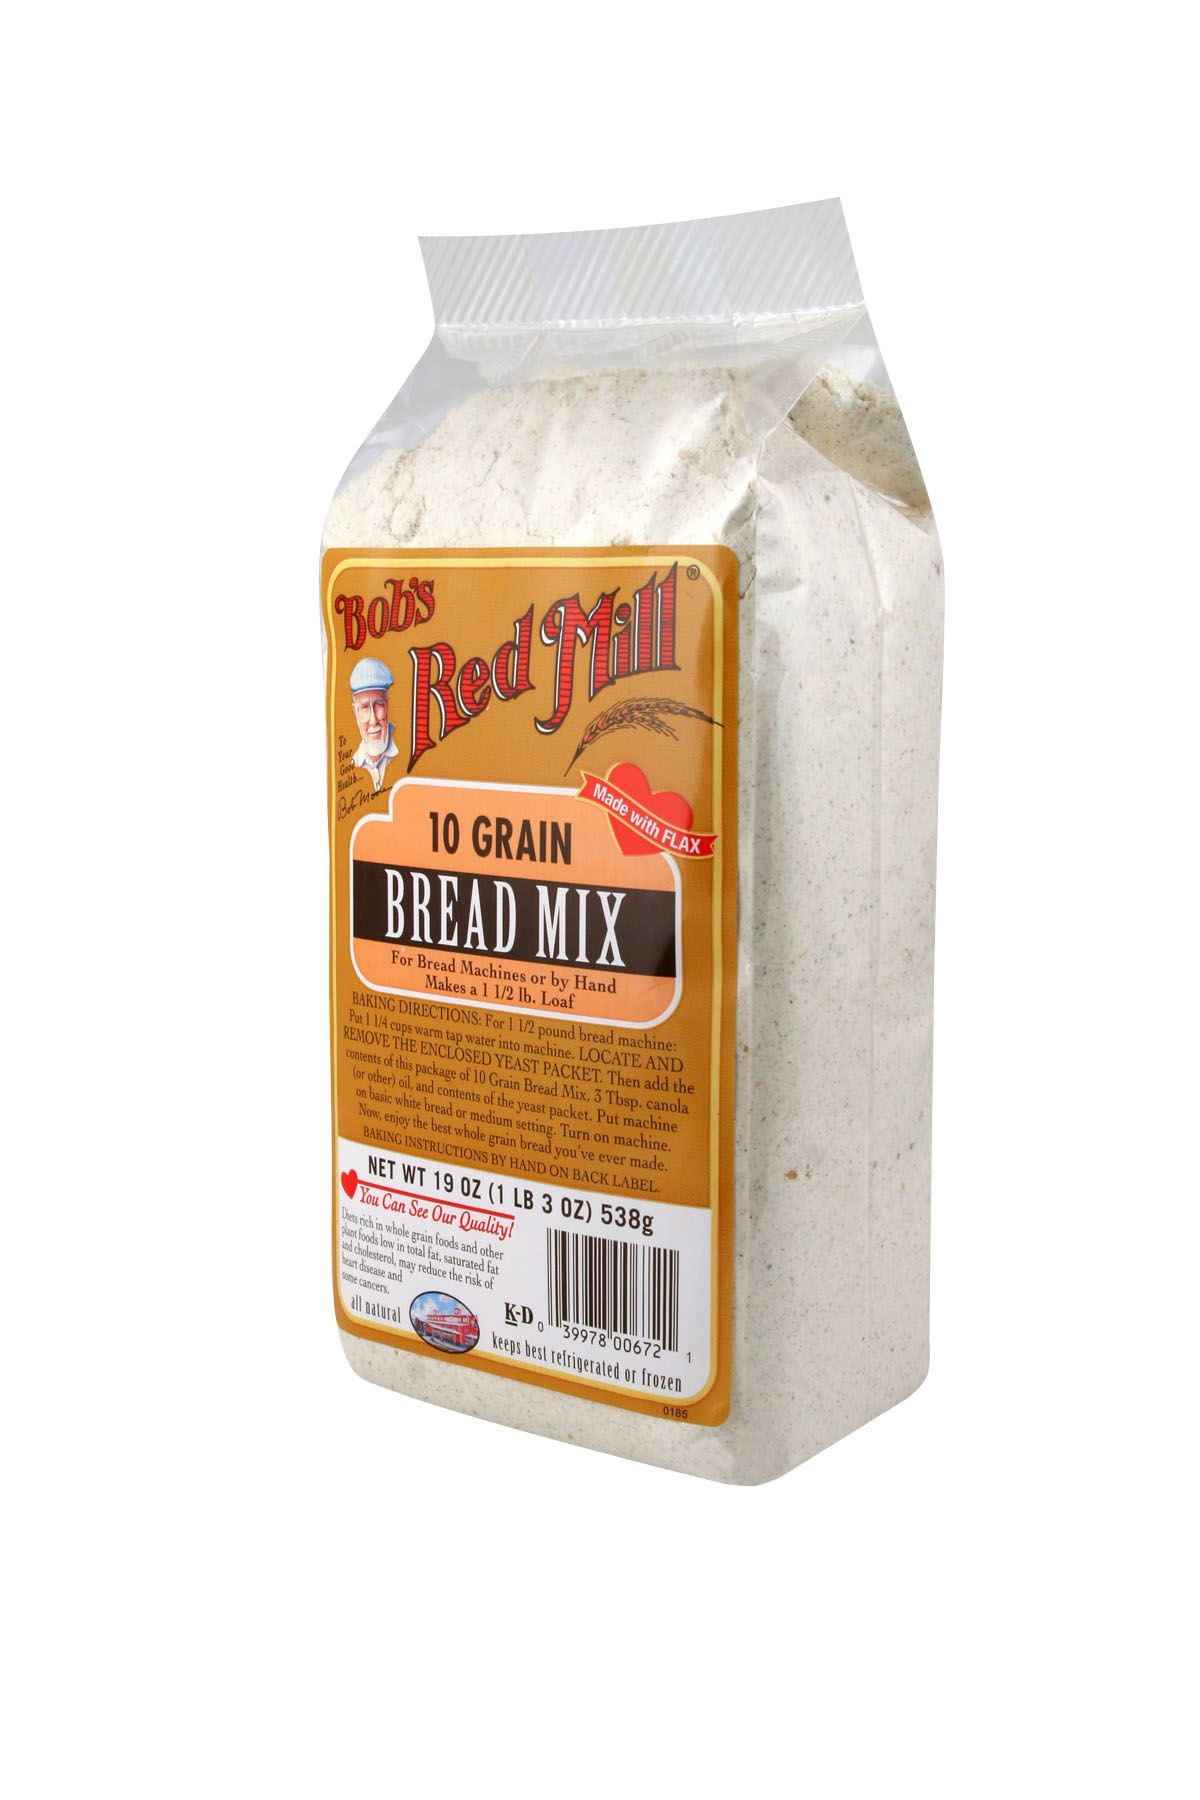 10 grain bread mix, must try. Bread mix, Bobs red mill